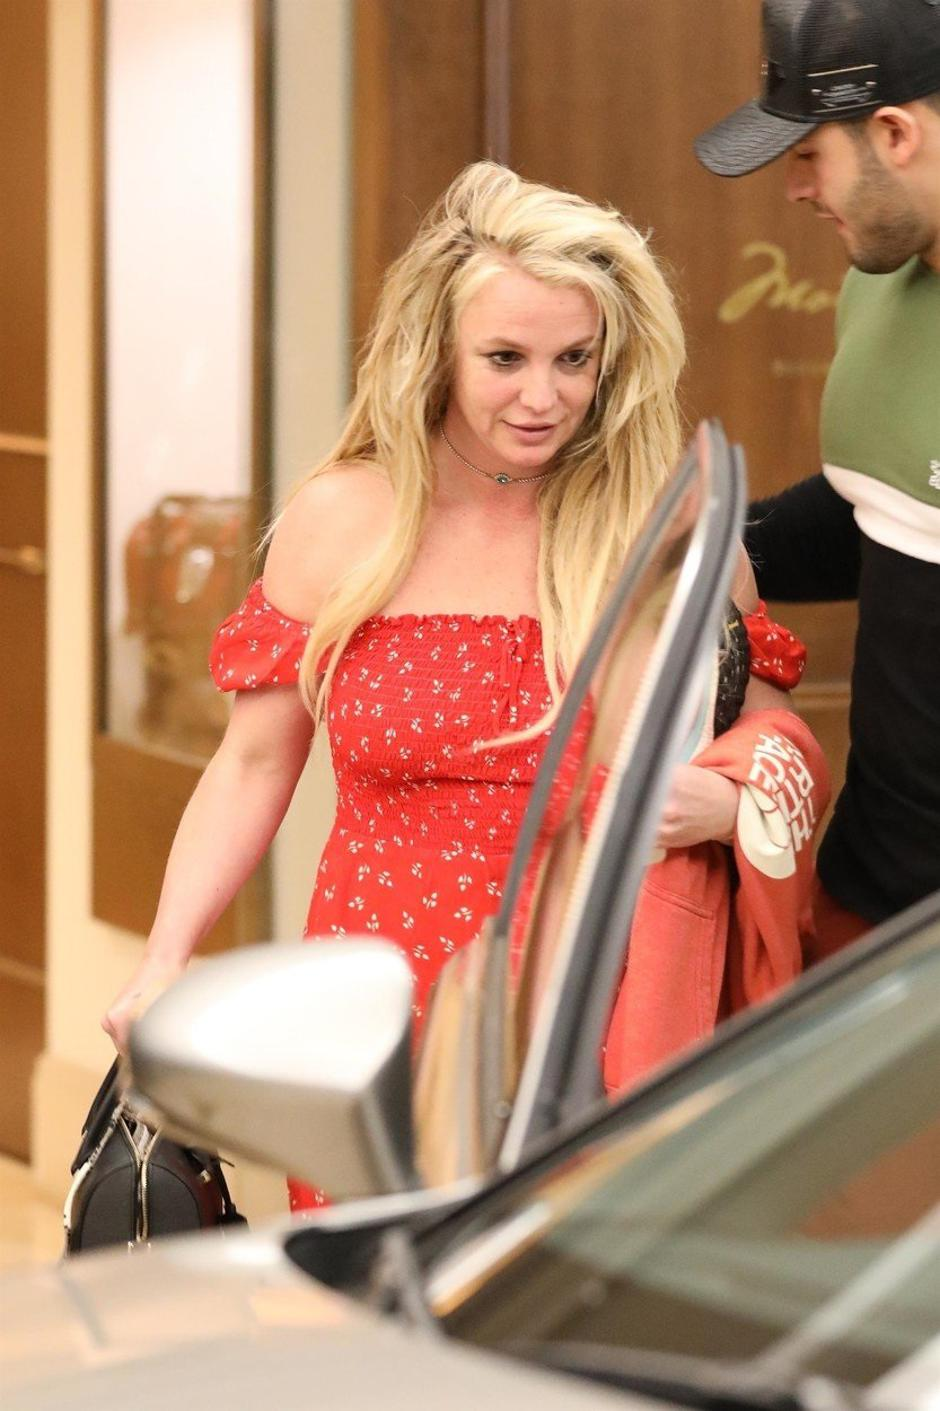 *PREMIUM-EXCLUSIVE* Britney Spears is seen leaving The Montage hotel in Beverly Hills after a day of indulgences | Autor: CLTN, LEGA, GICE